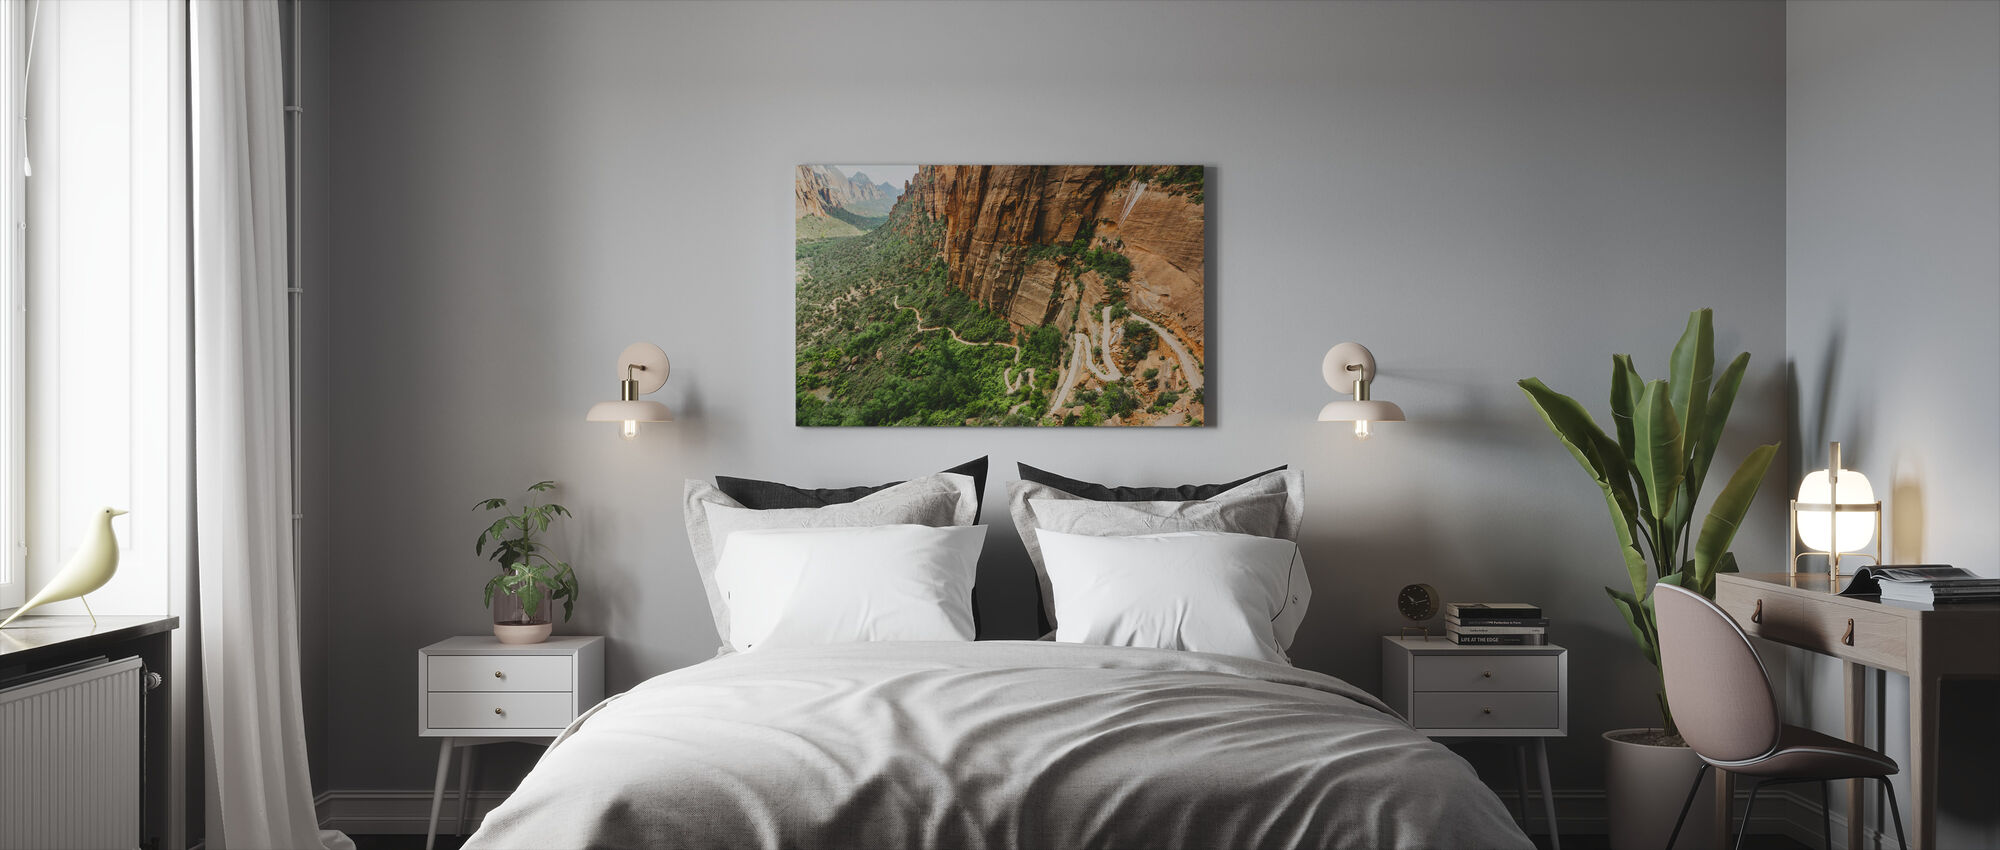 Pathway in Zion National Park, USA - Canvas print - Bedroom